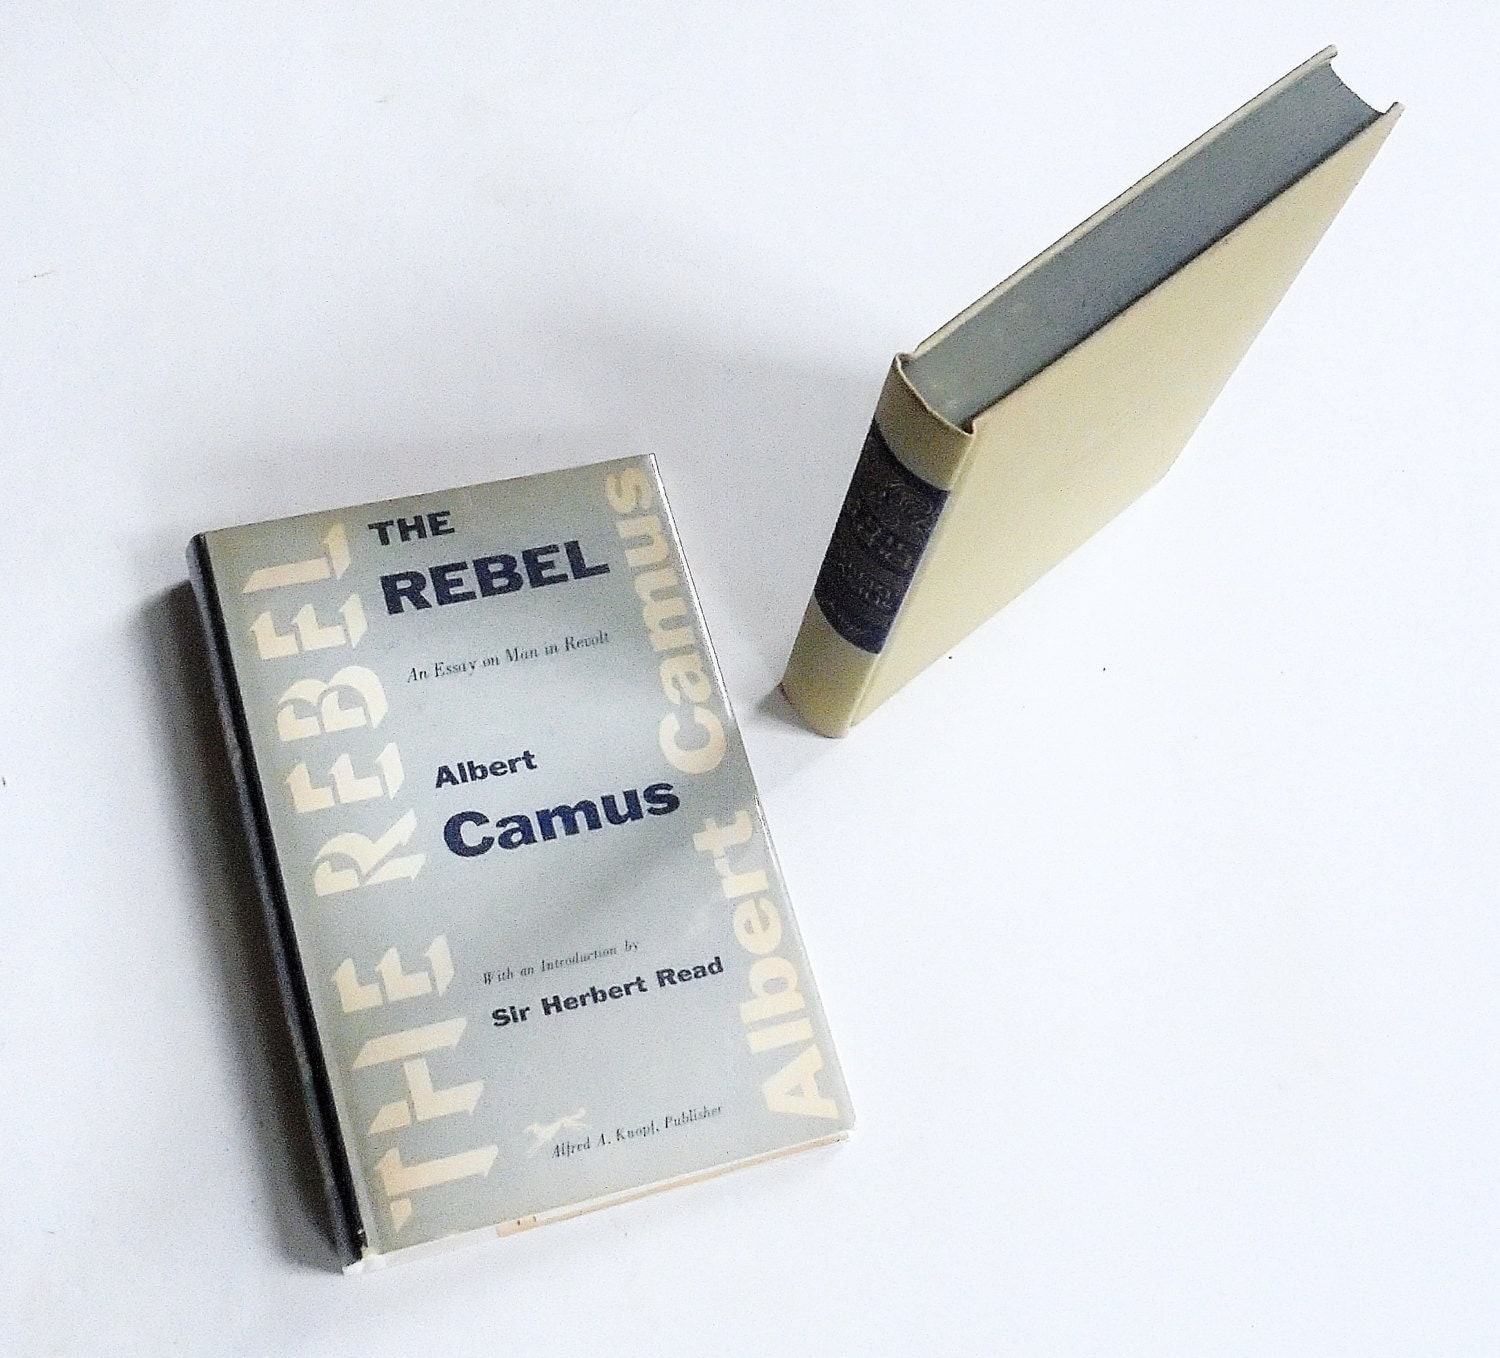 an essay on man albert camus the rebel essay alexander pope essay  albert camus the rebel essay albert camus the rebel essay